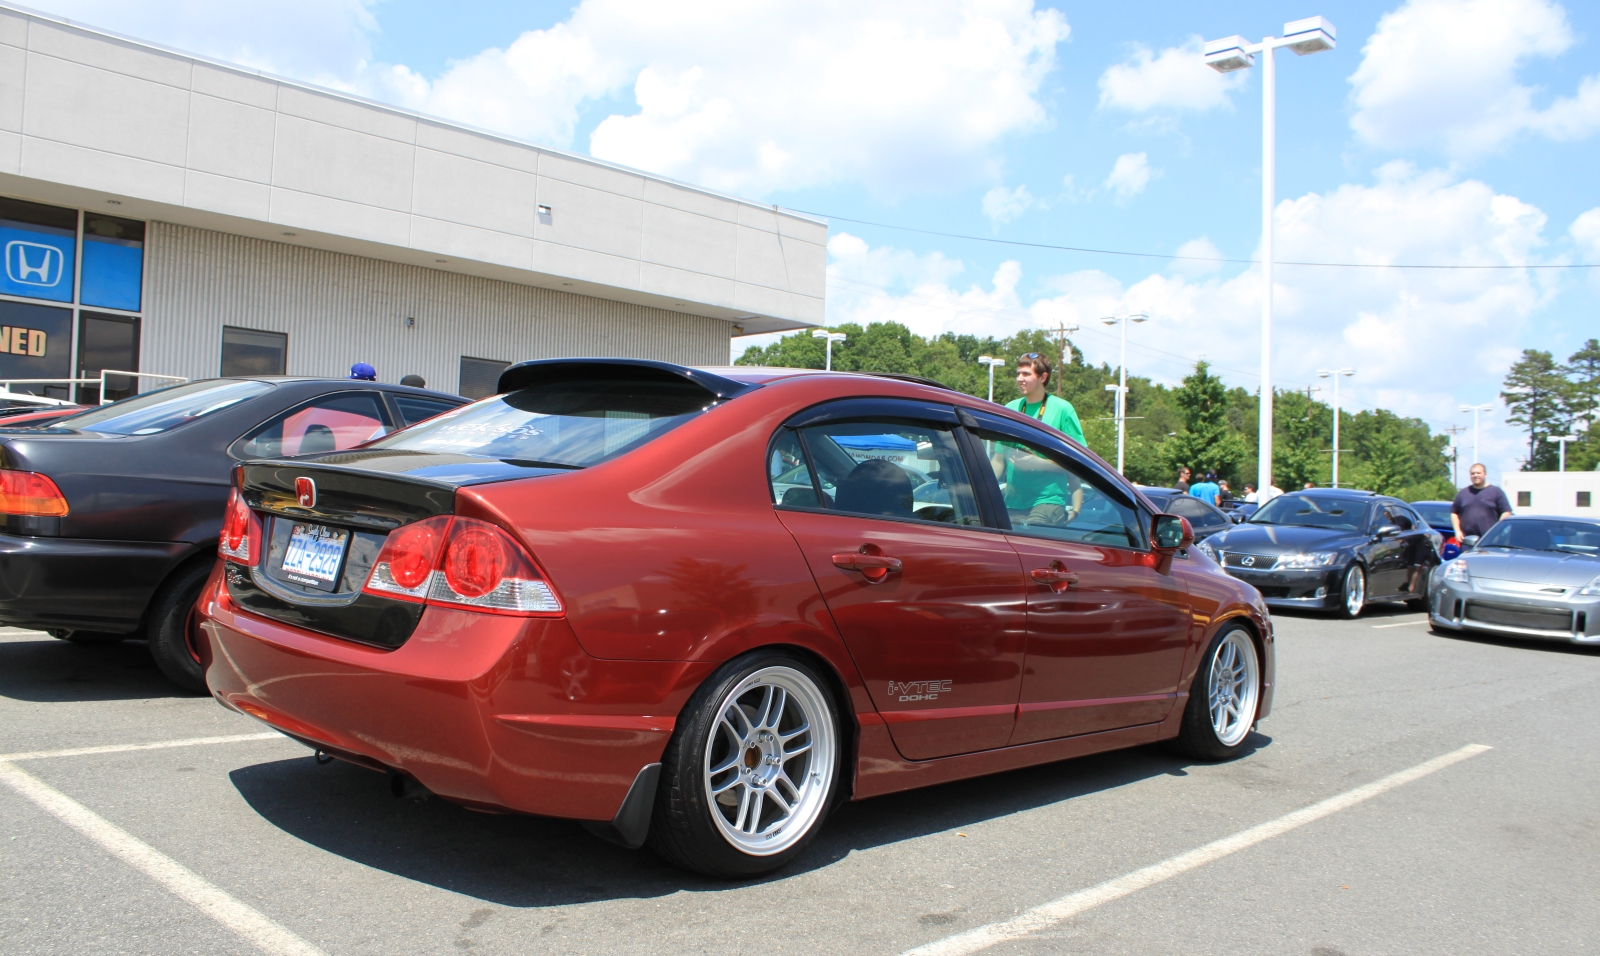 Jdm civic conversion with a carbon fibre trunk because you know